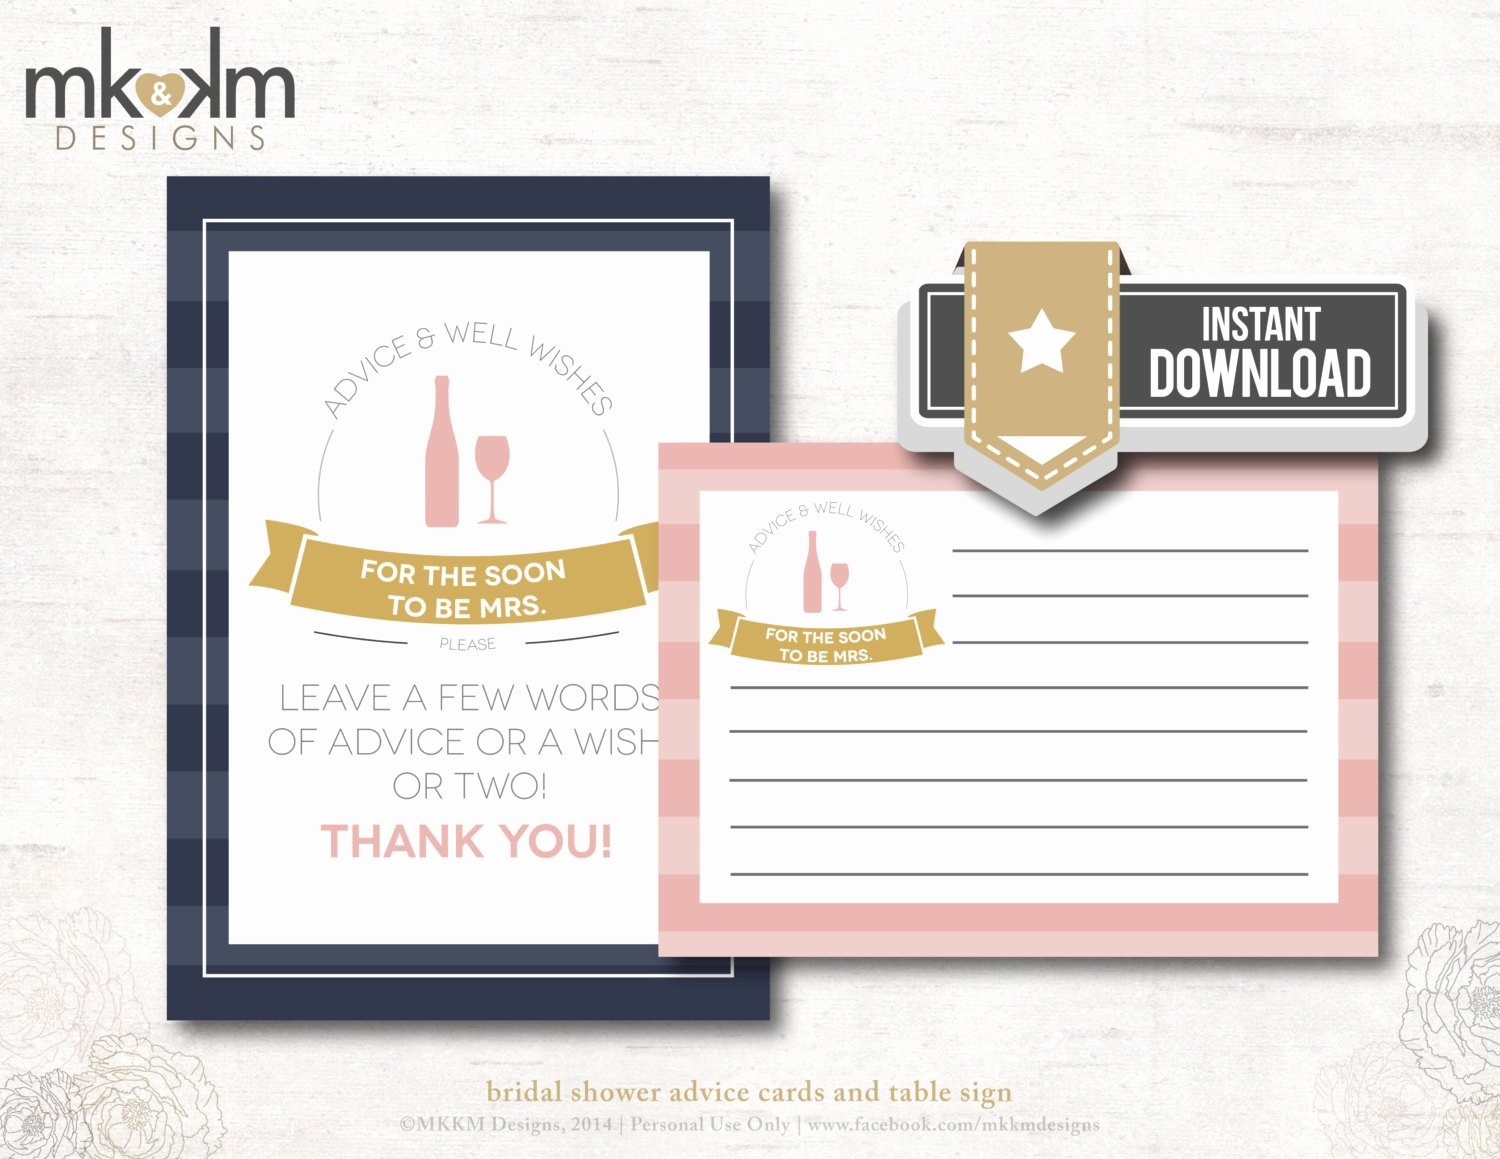 Bridal Shower Advice Cards Awesome Advice & Well Wishes Cards Bridal Shower Advice by